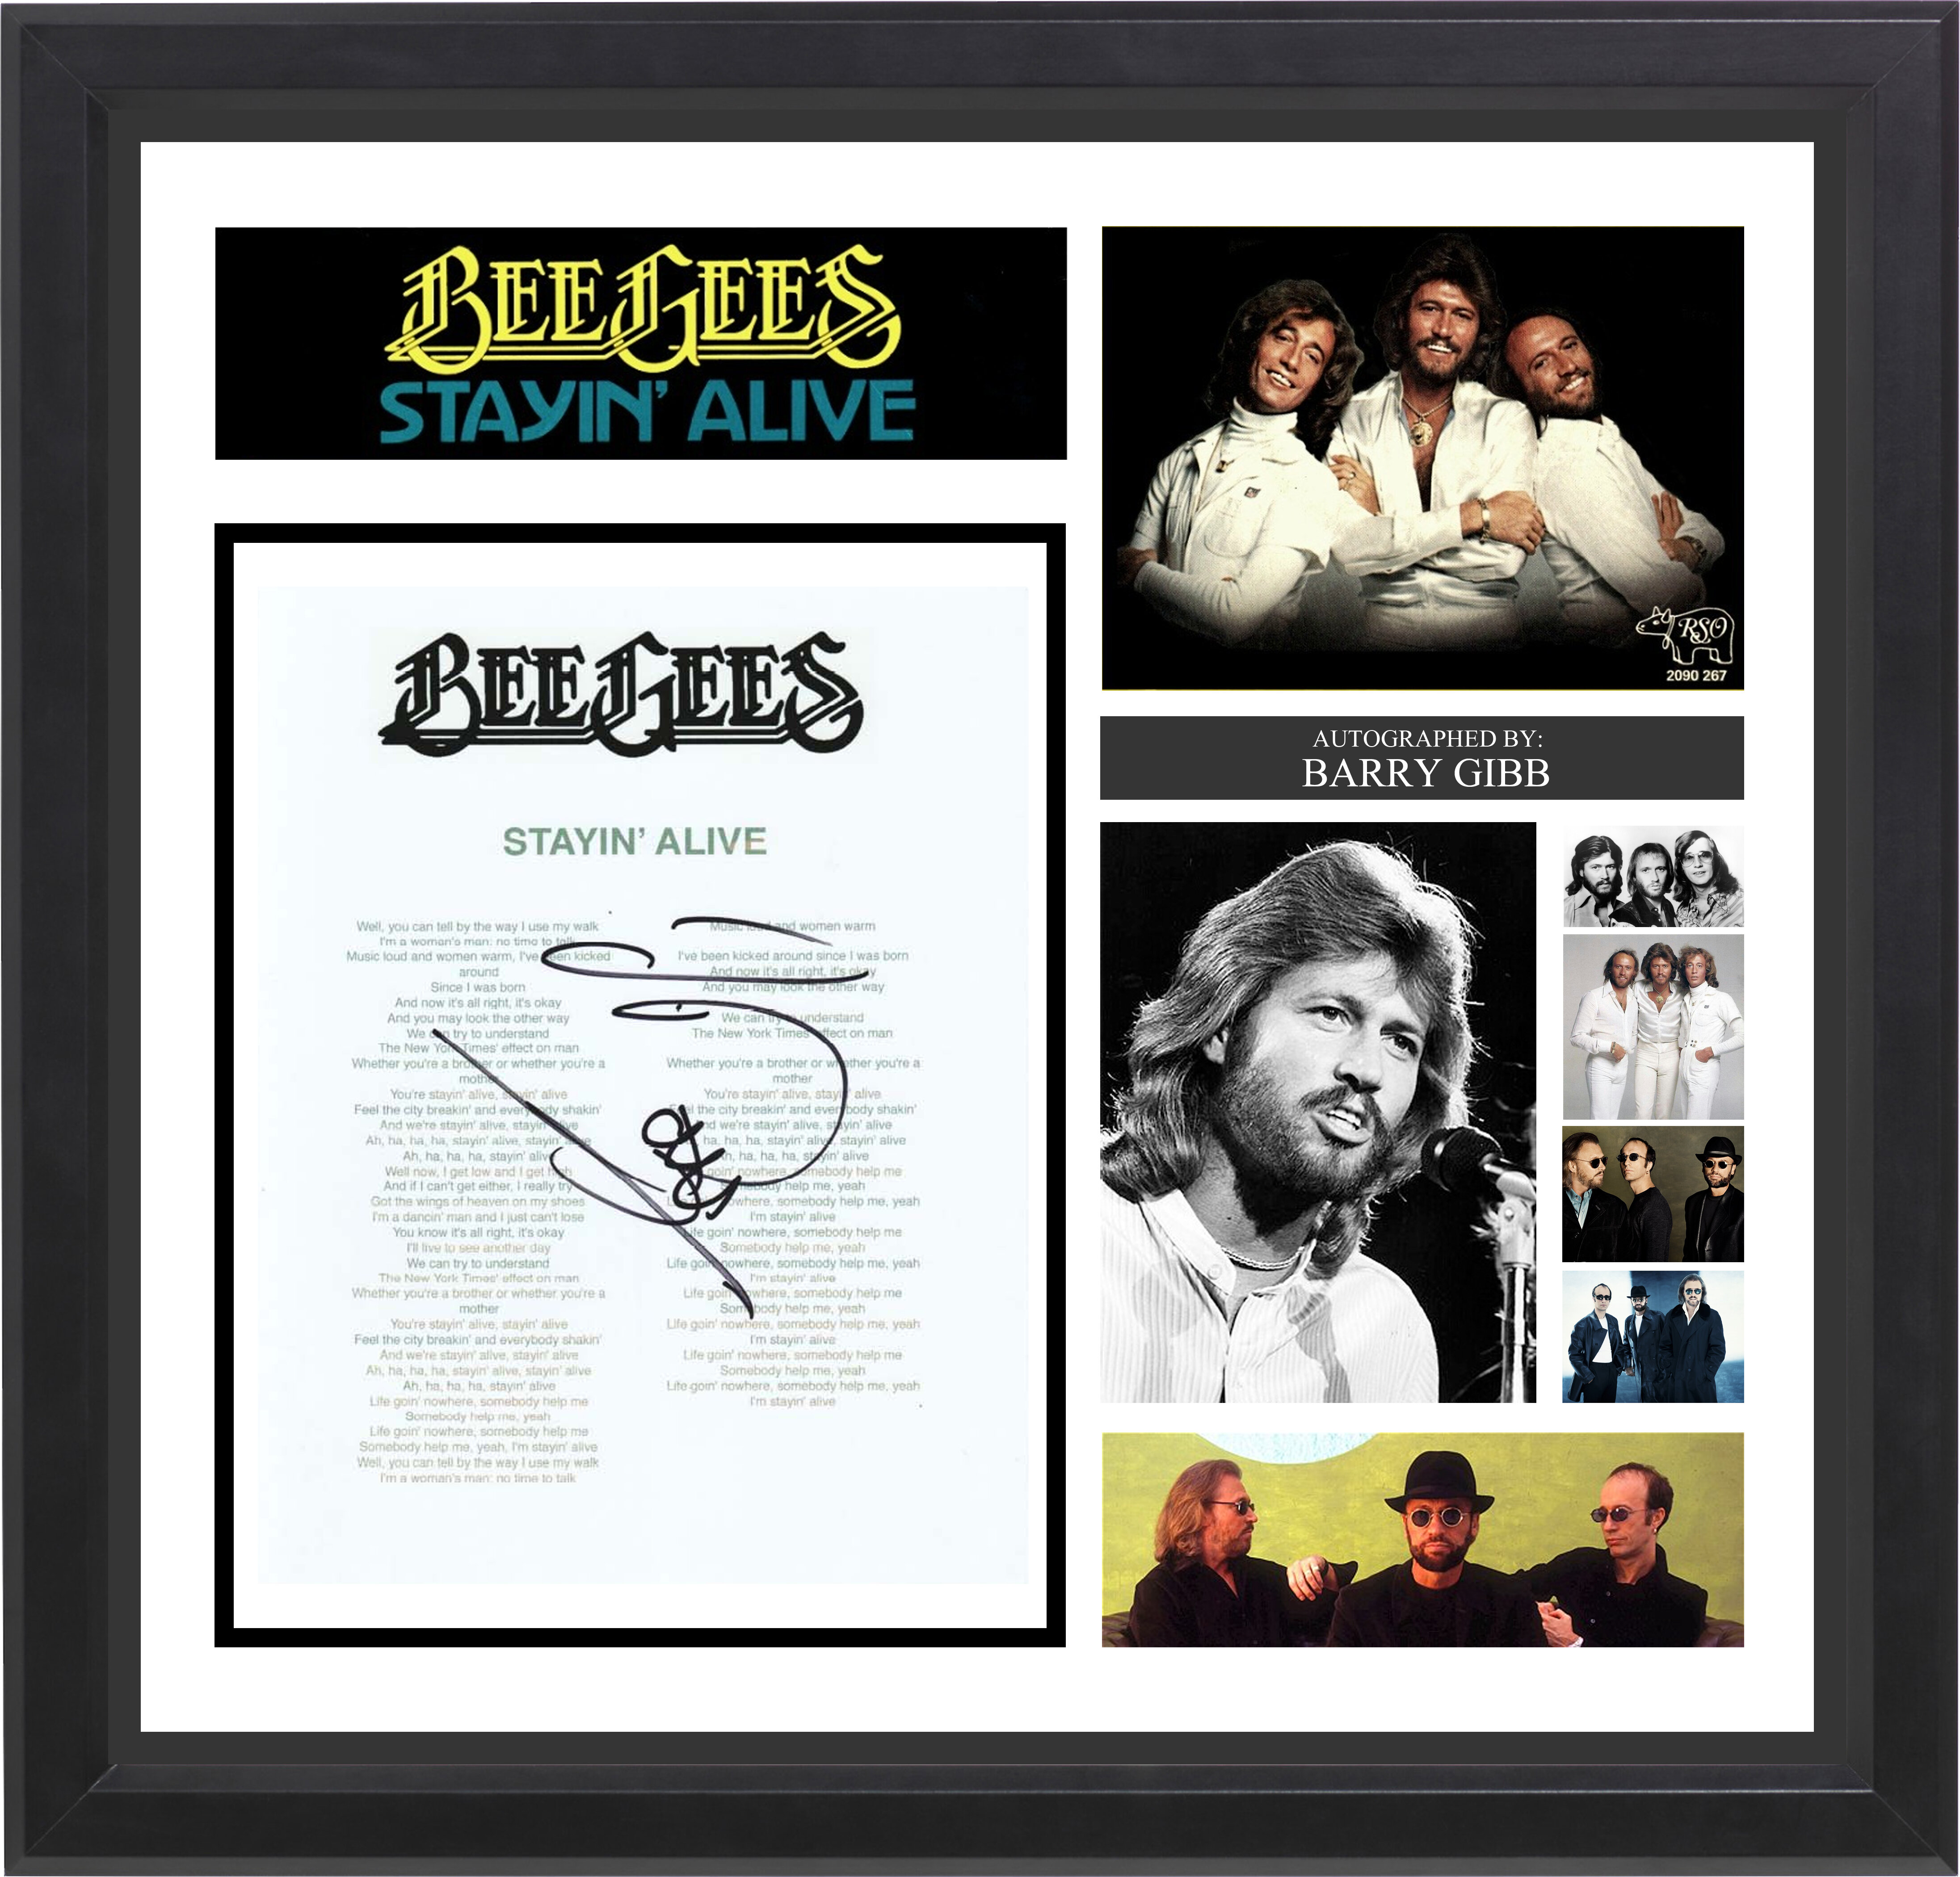 Luxewest beegees stayin alive autographed lyric collage luxewest beegees stayin alive autographed lyric collage reviews wayfair jeuxipadfo Choice Image